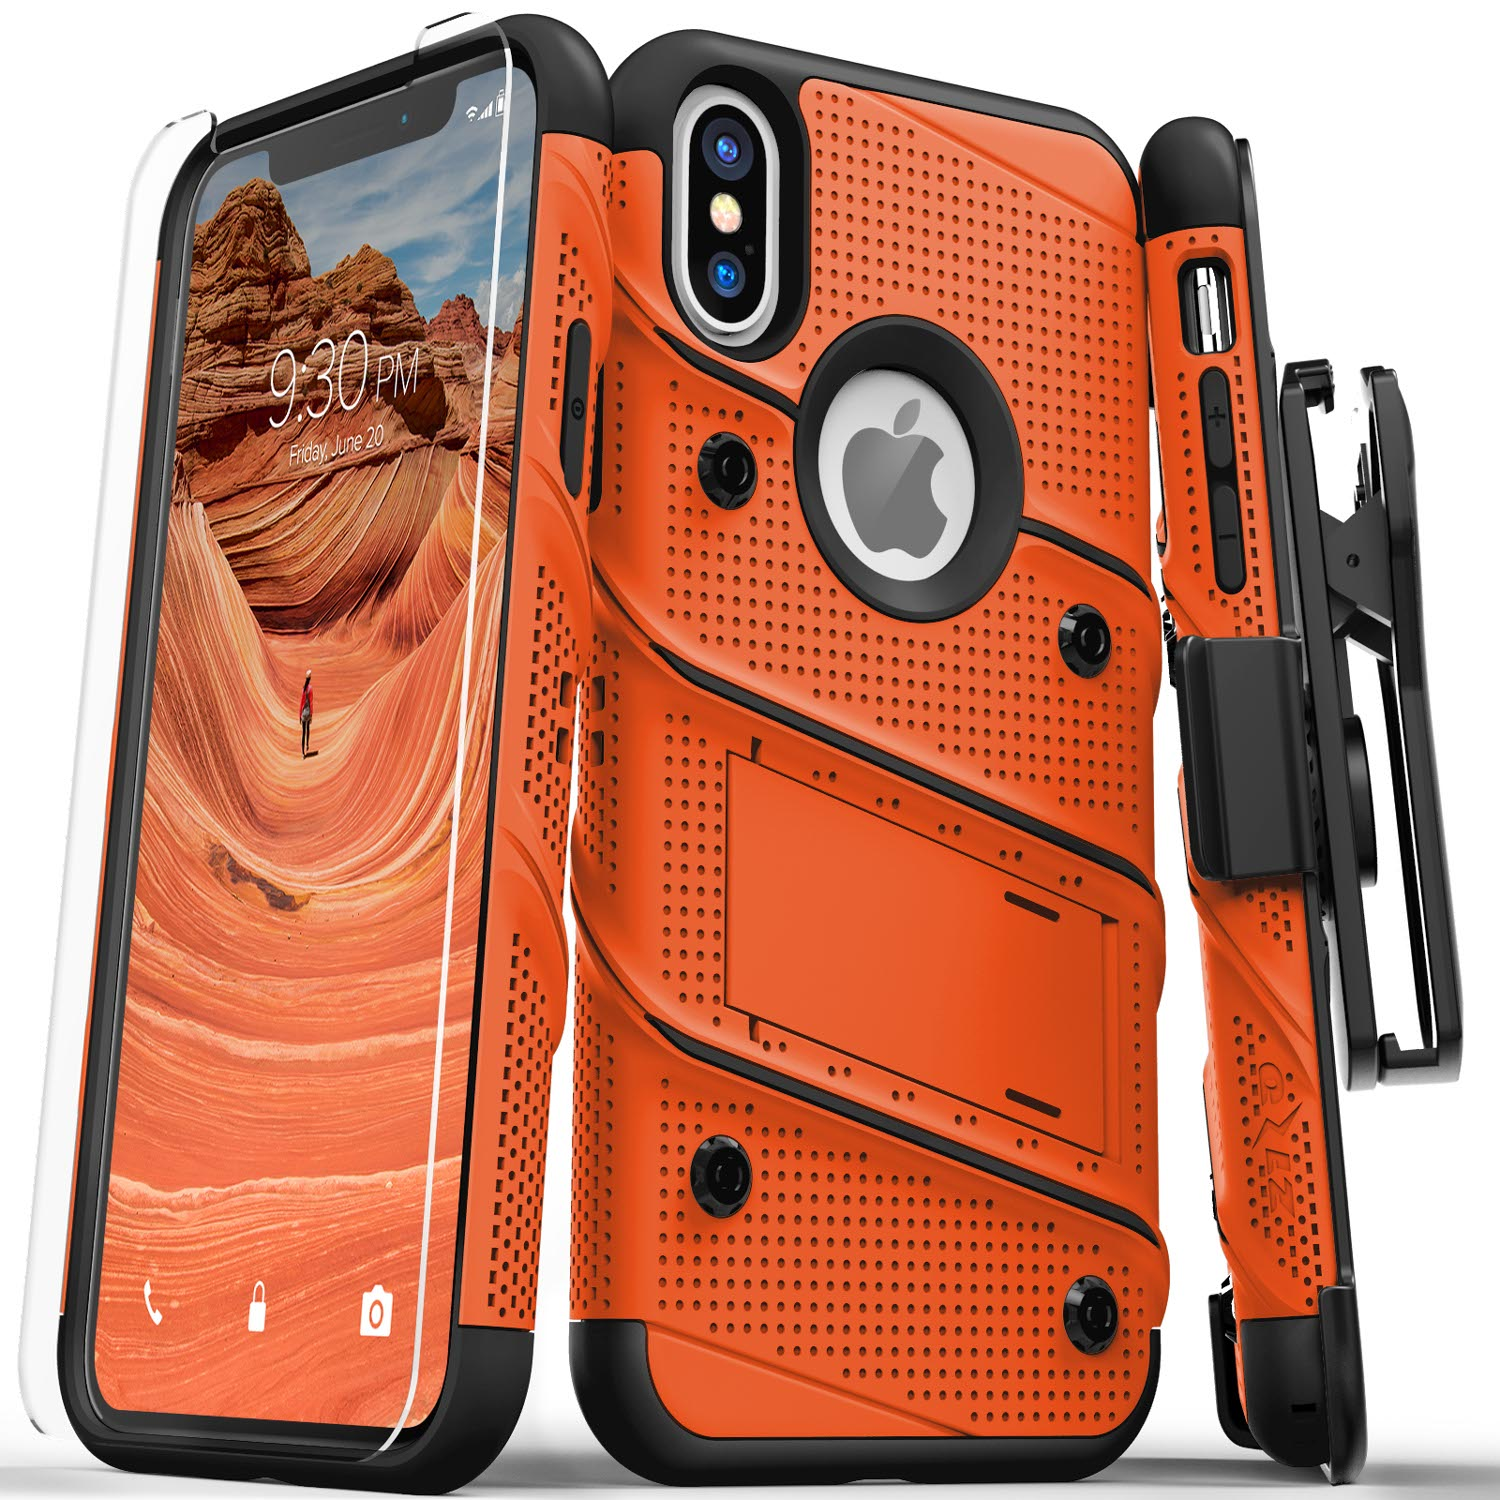 ORANGE IPHONE X CASE